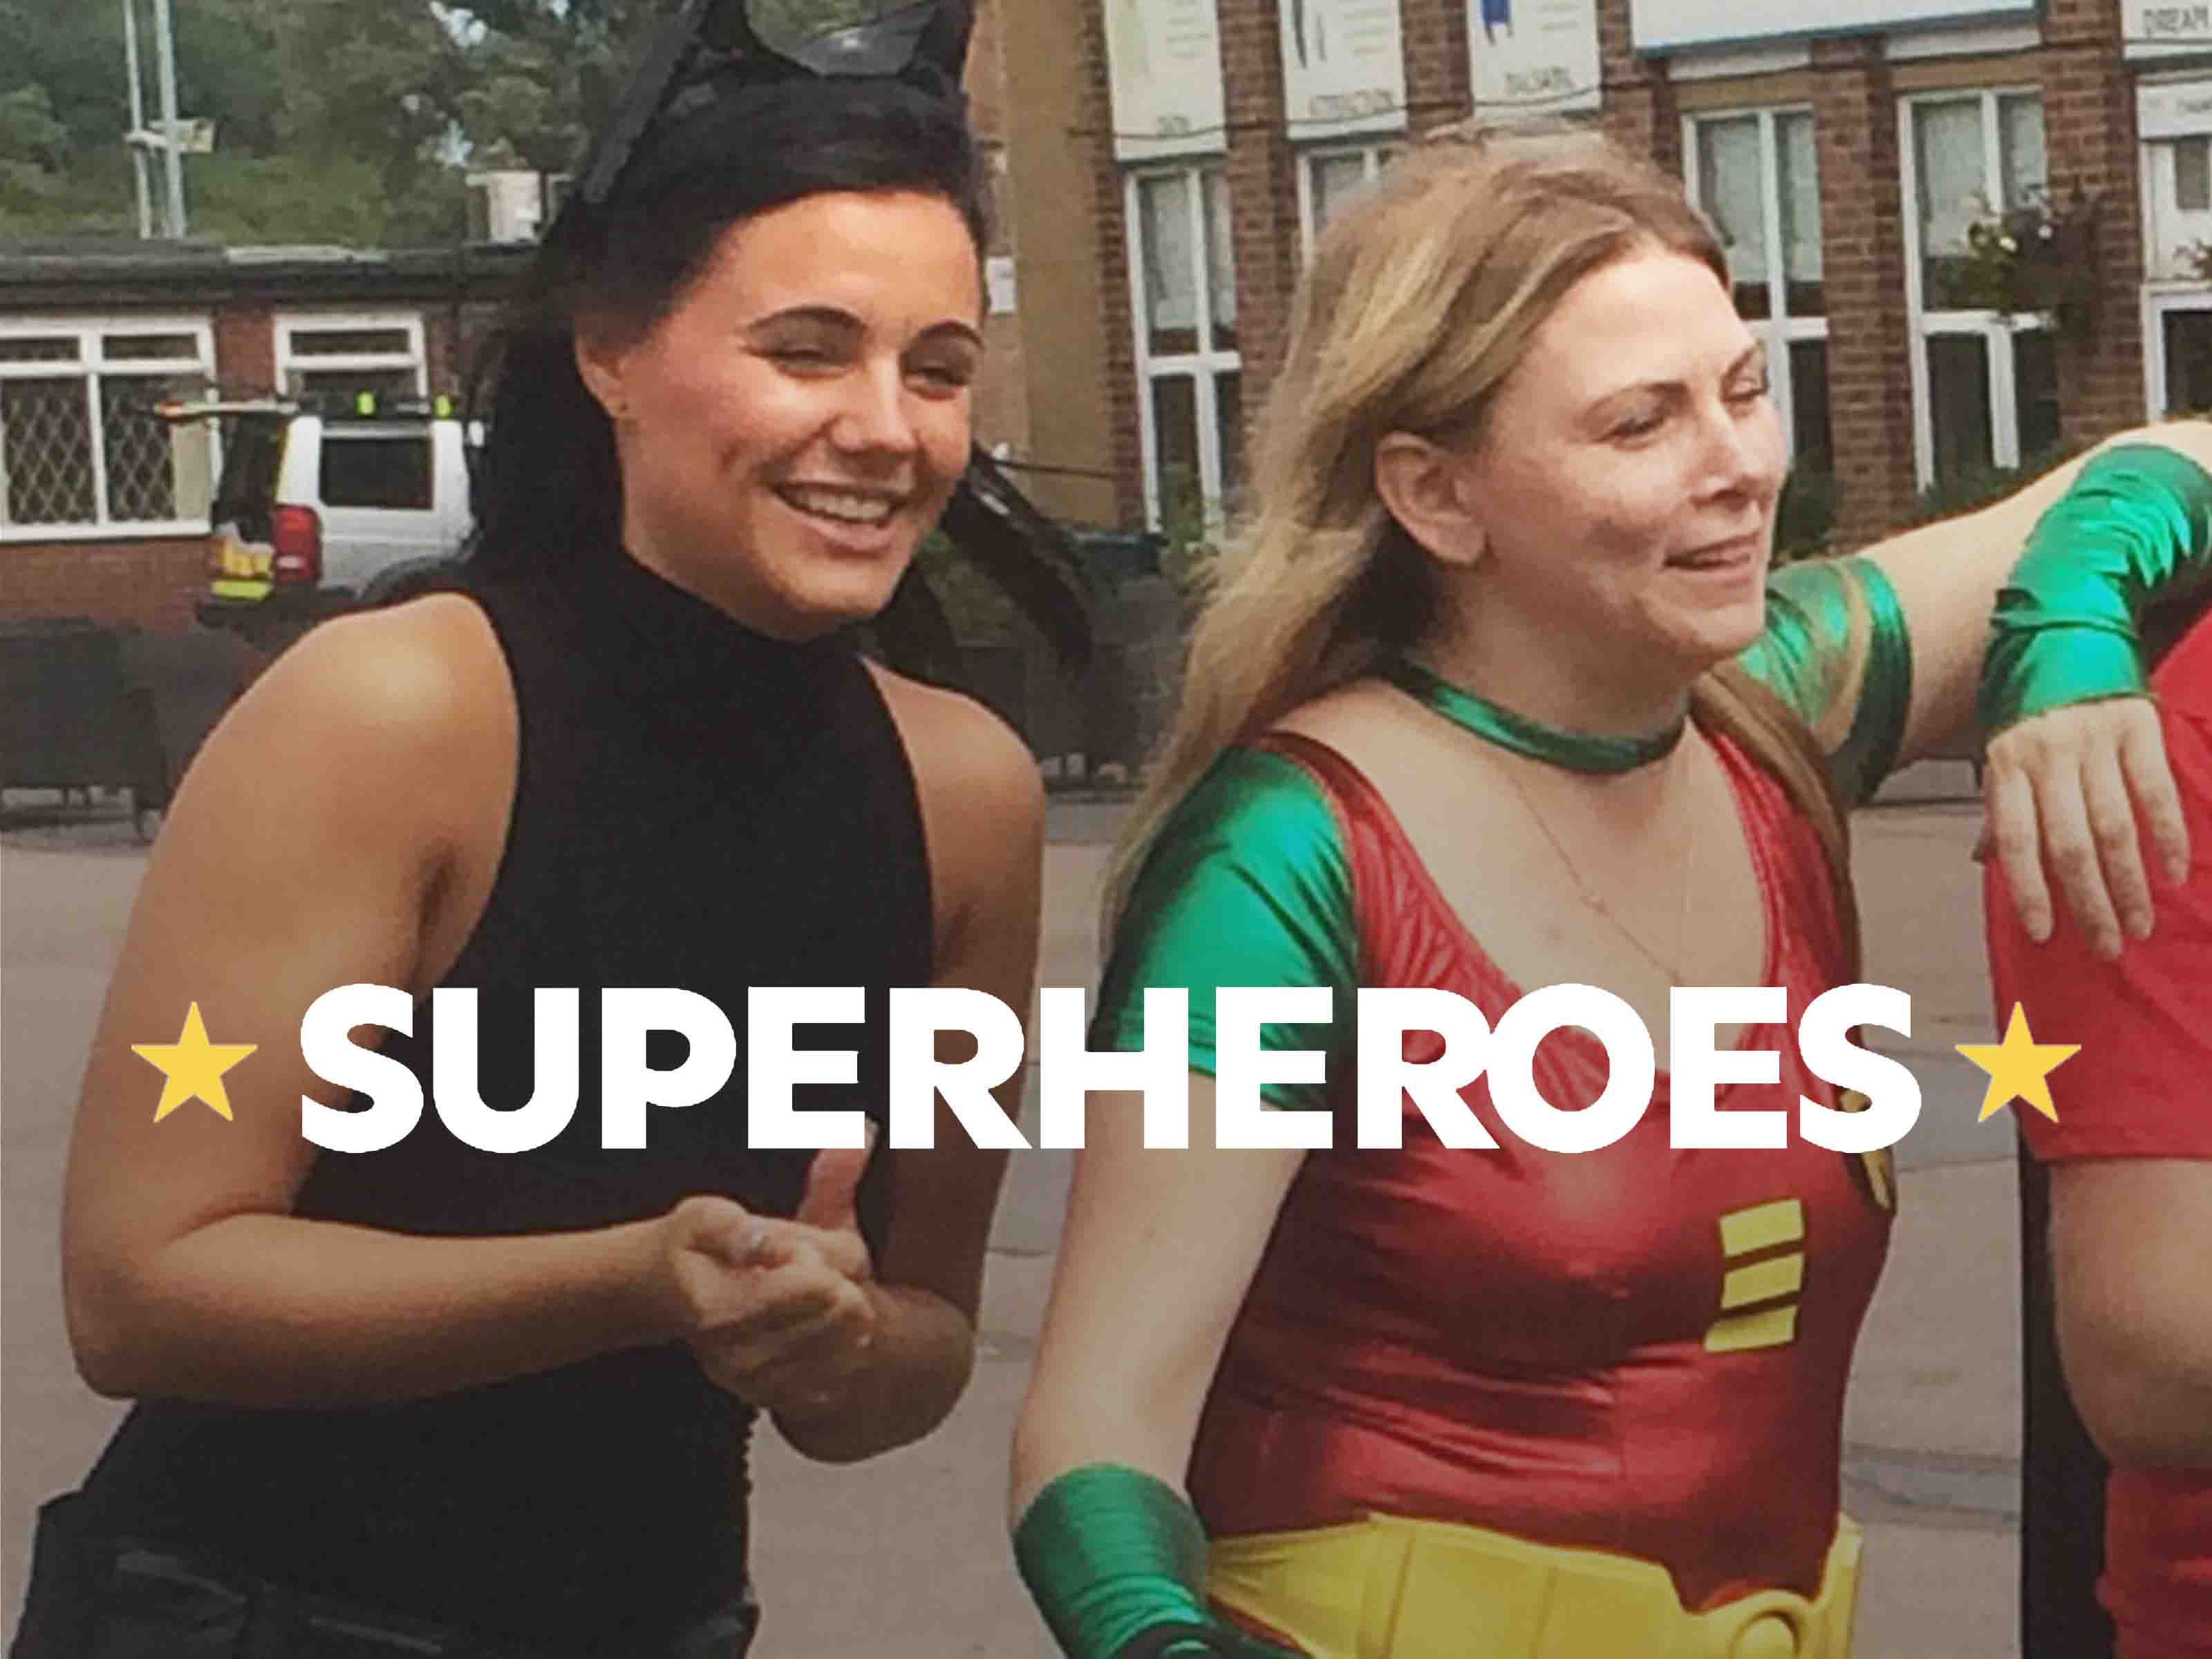 Hen Party Themes - Superheroes